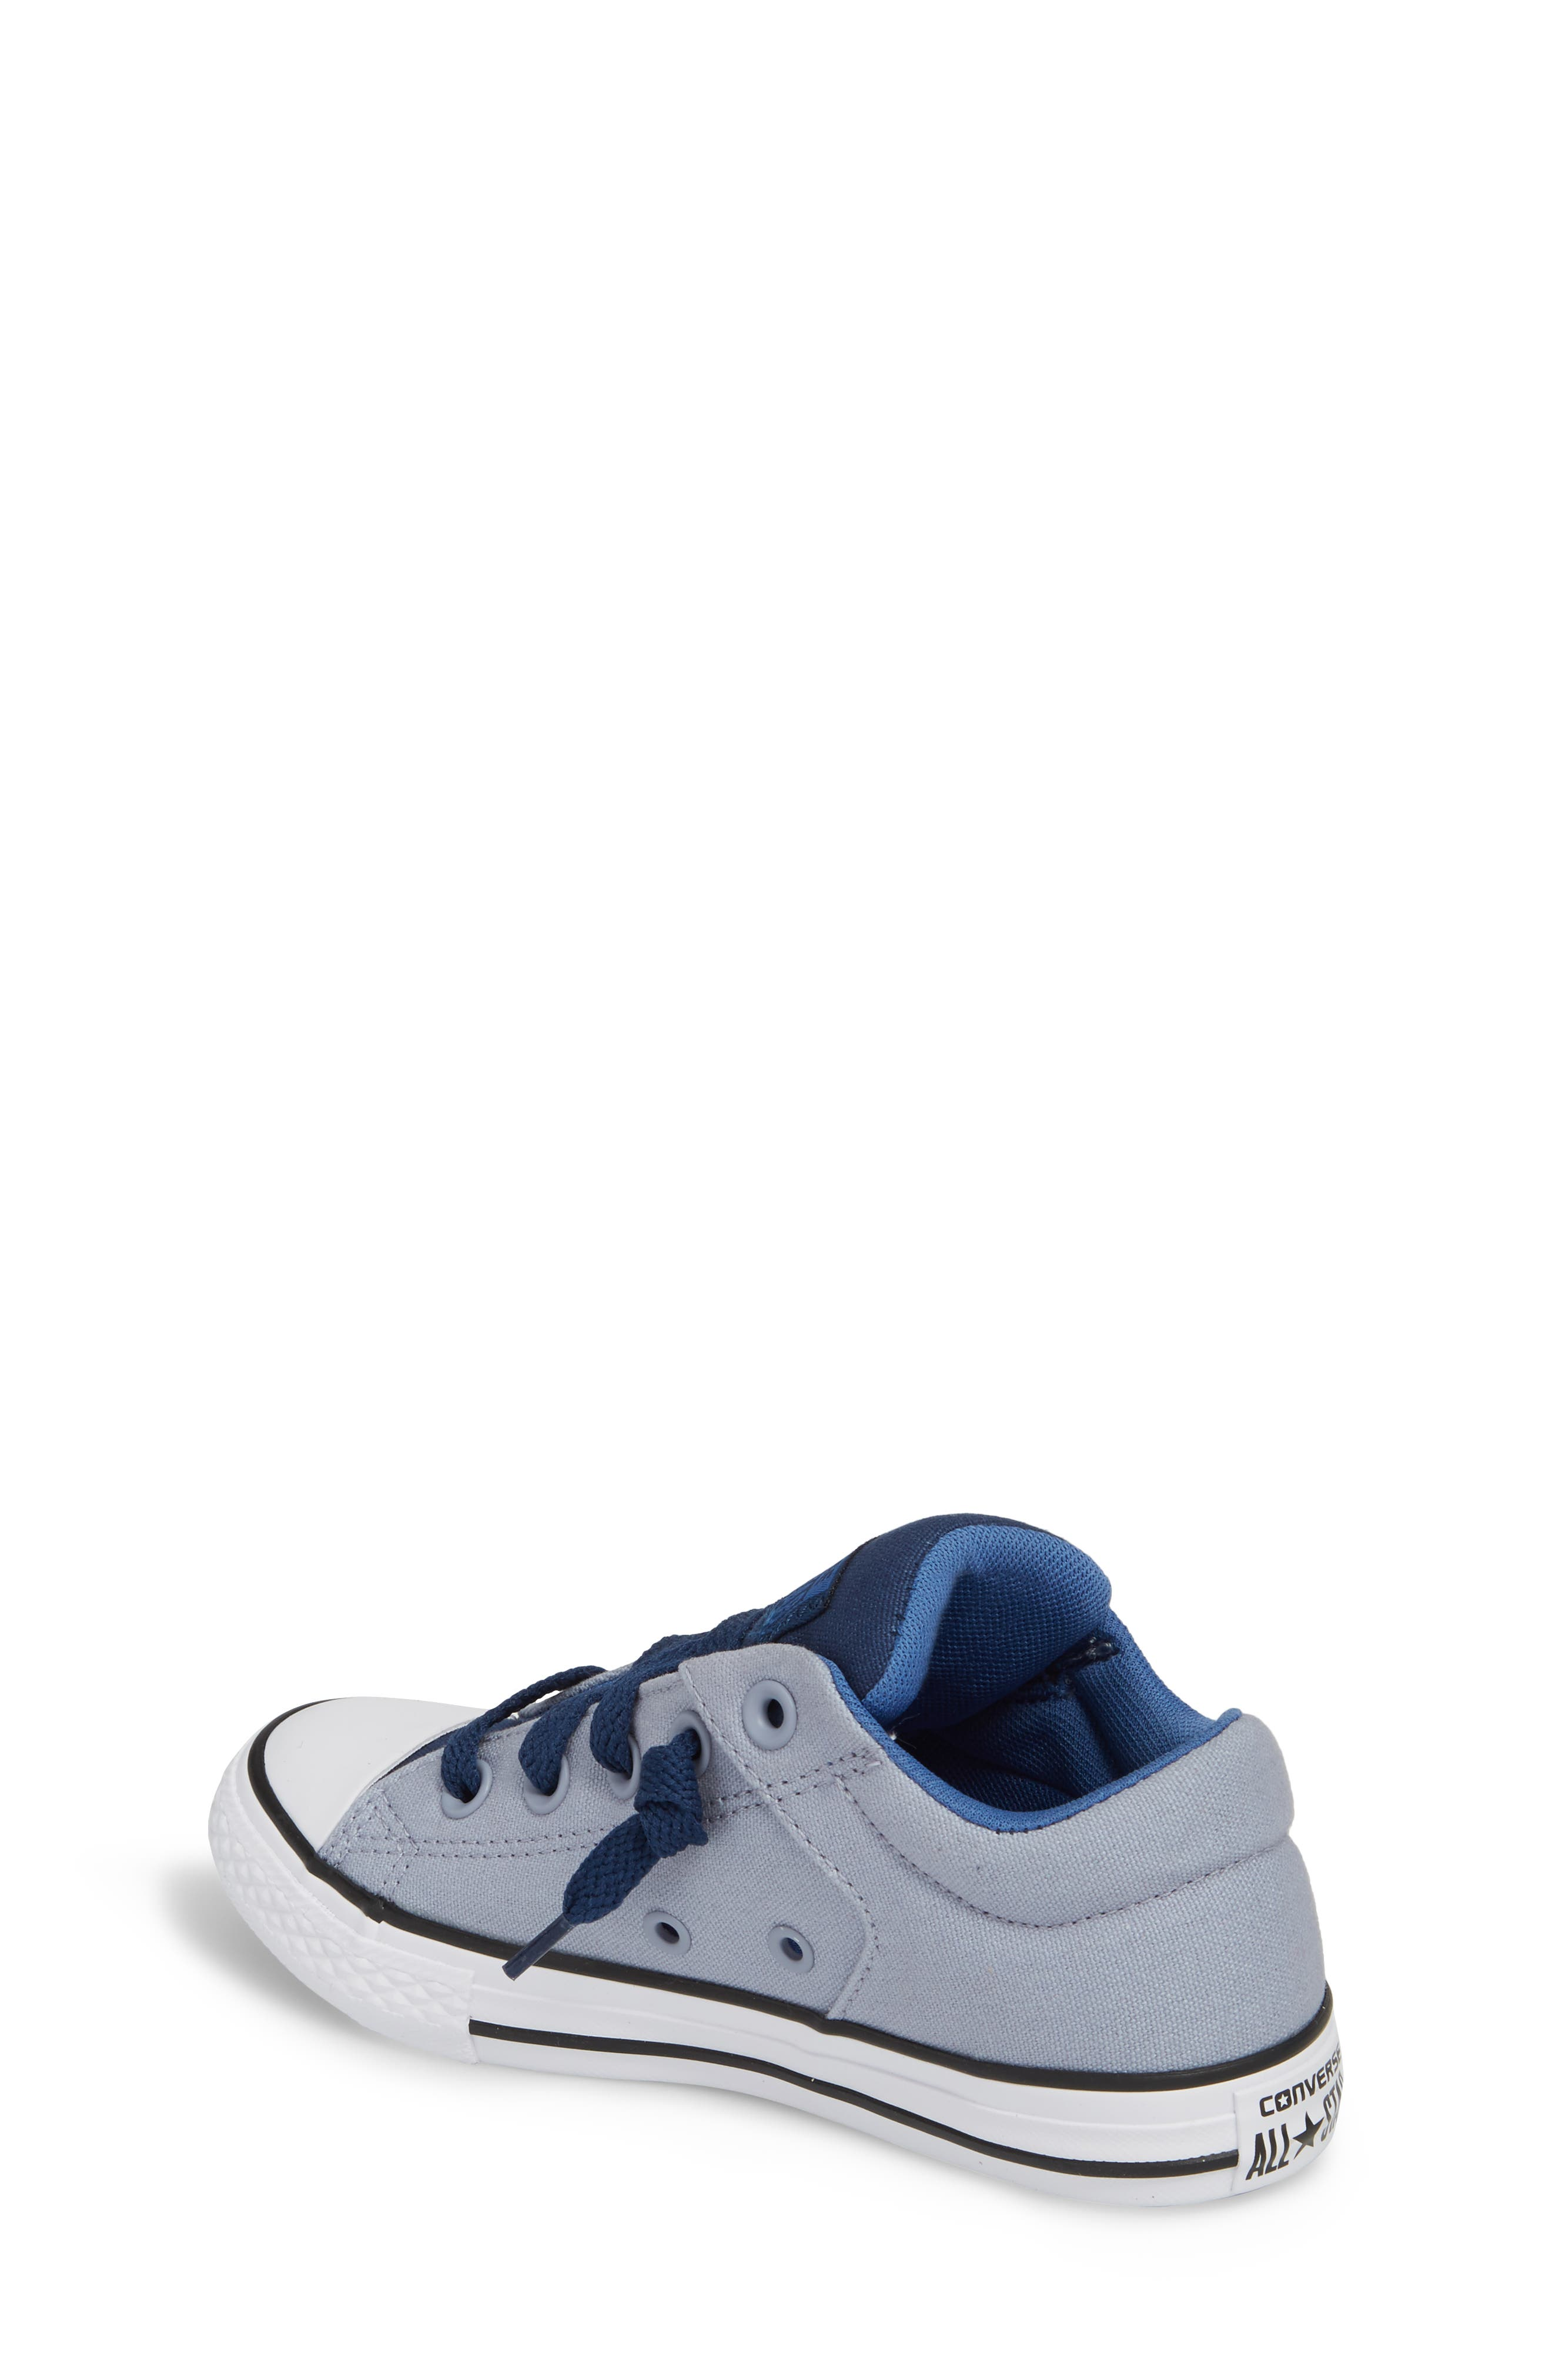 Chuck Taylor<sup>®</sup> All Star<sup>®</sup> 'High Street' Slip-On Sneaker,                             Alternate thumbnail 2, color,                             Glacier Grey